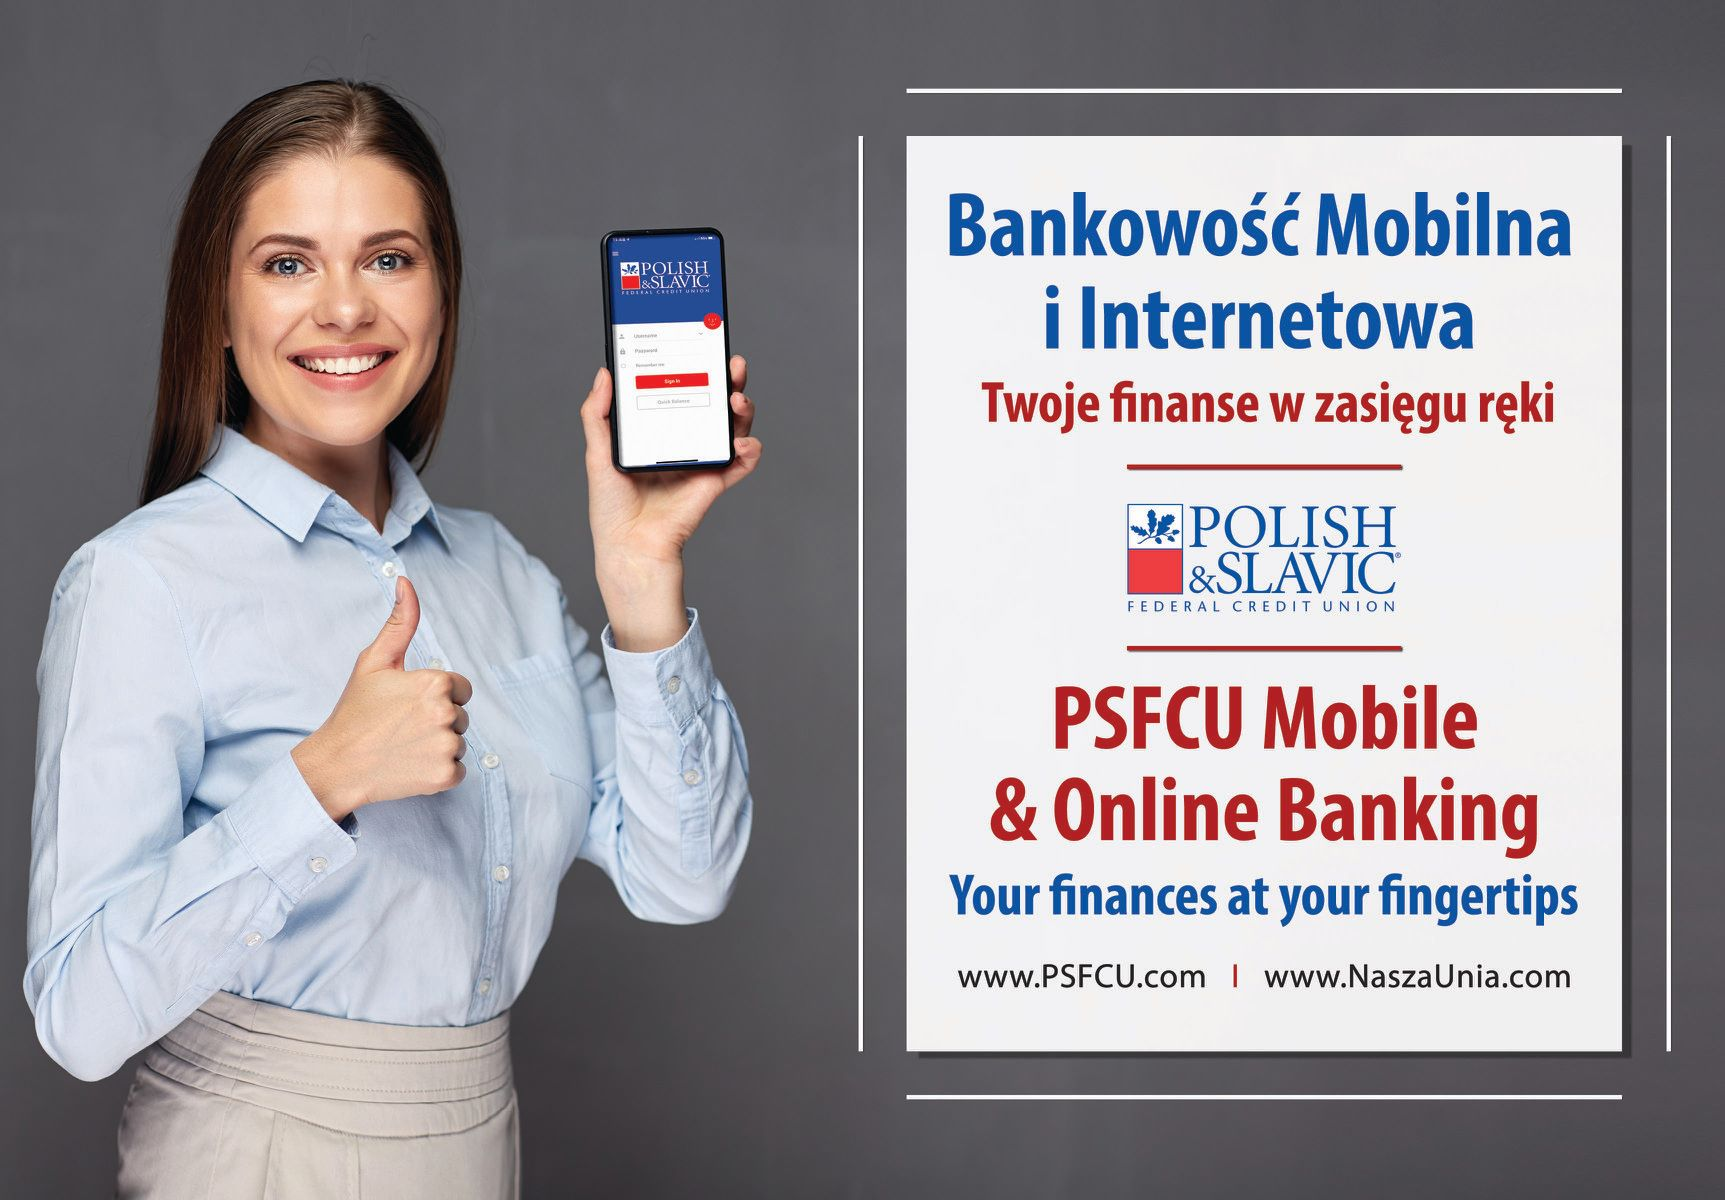 PSFCU Mobile and Online Banking